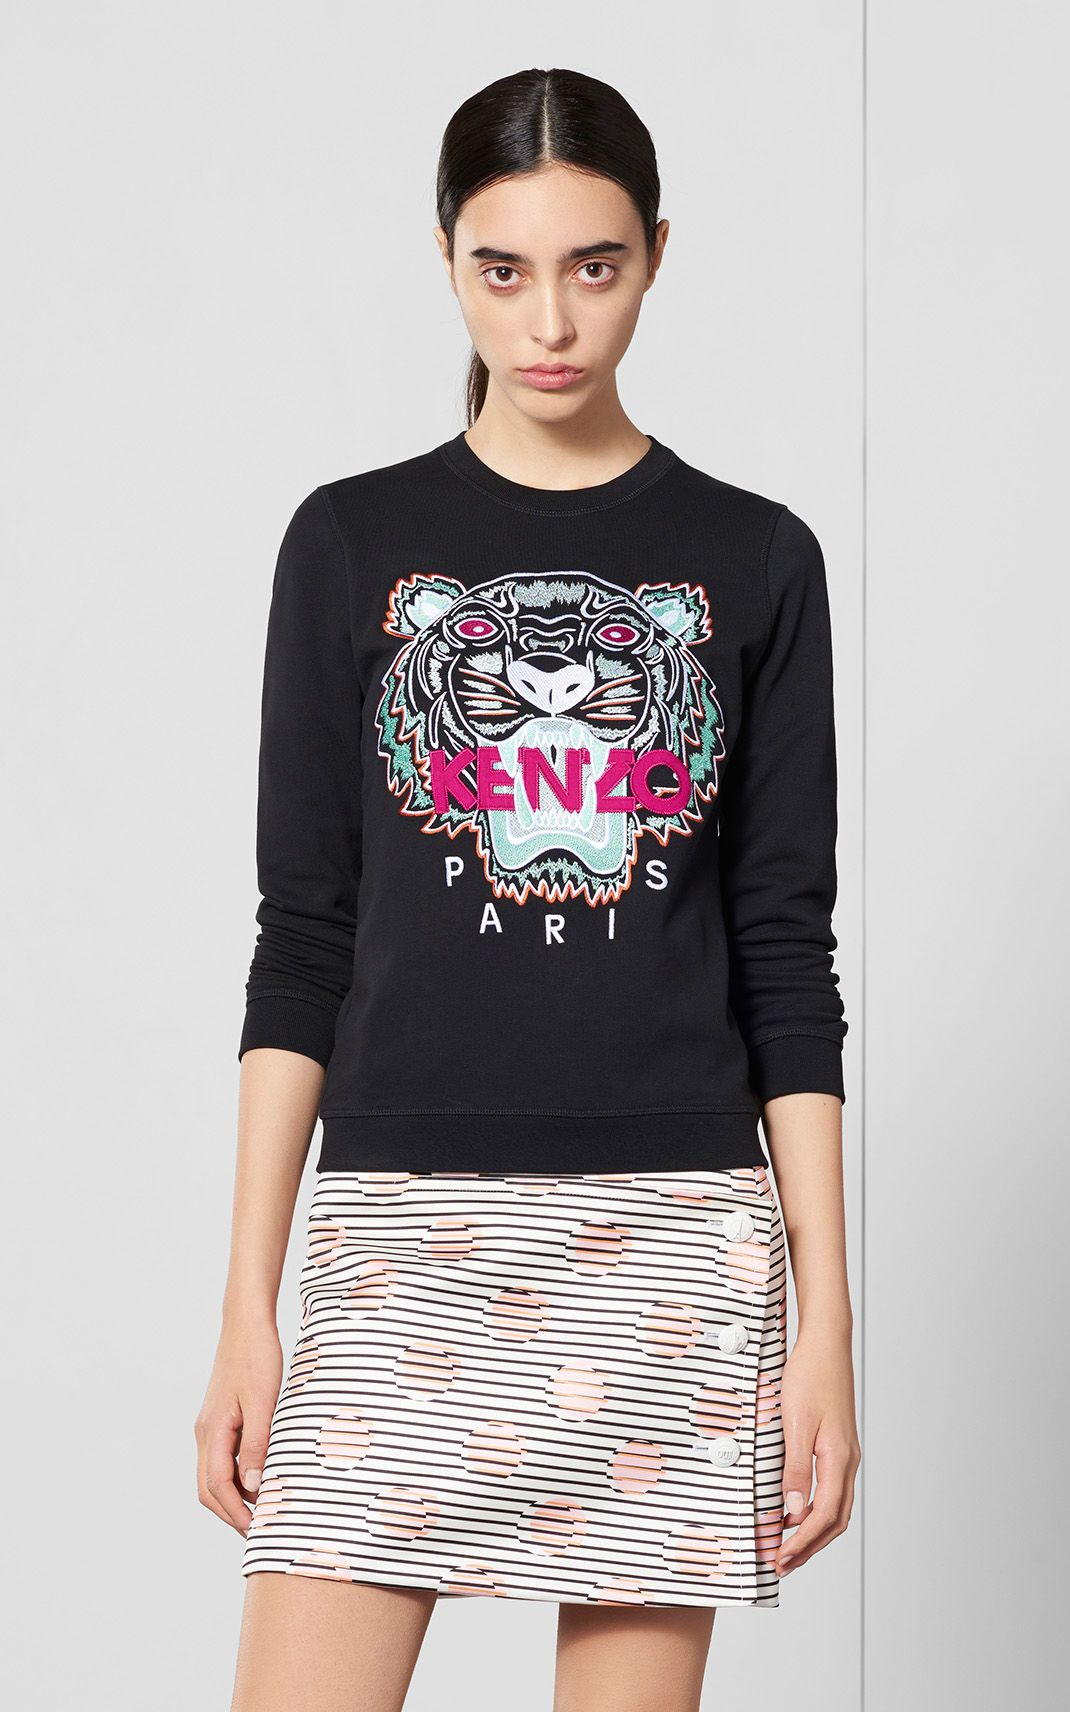 KENZO Paris Tiger Sweatshirt in Black  7f47e5e114